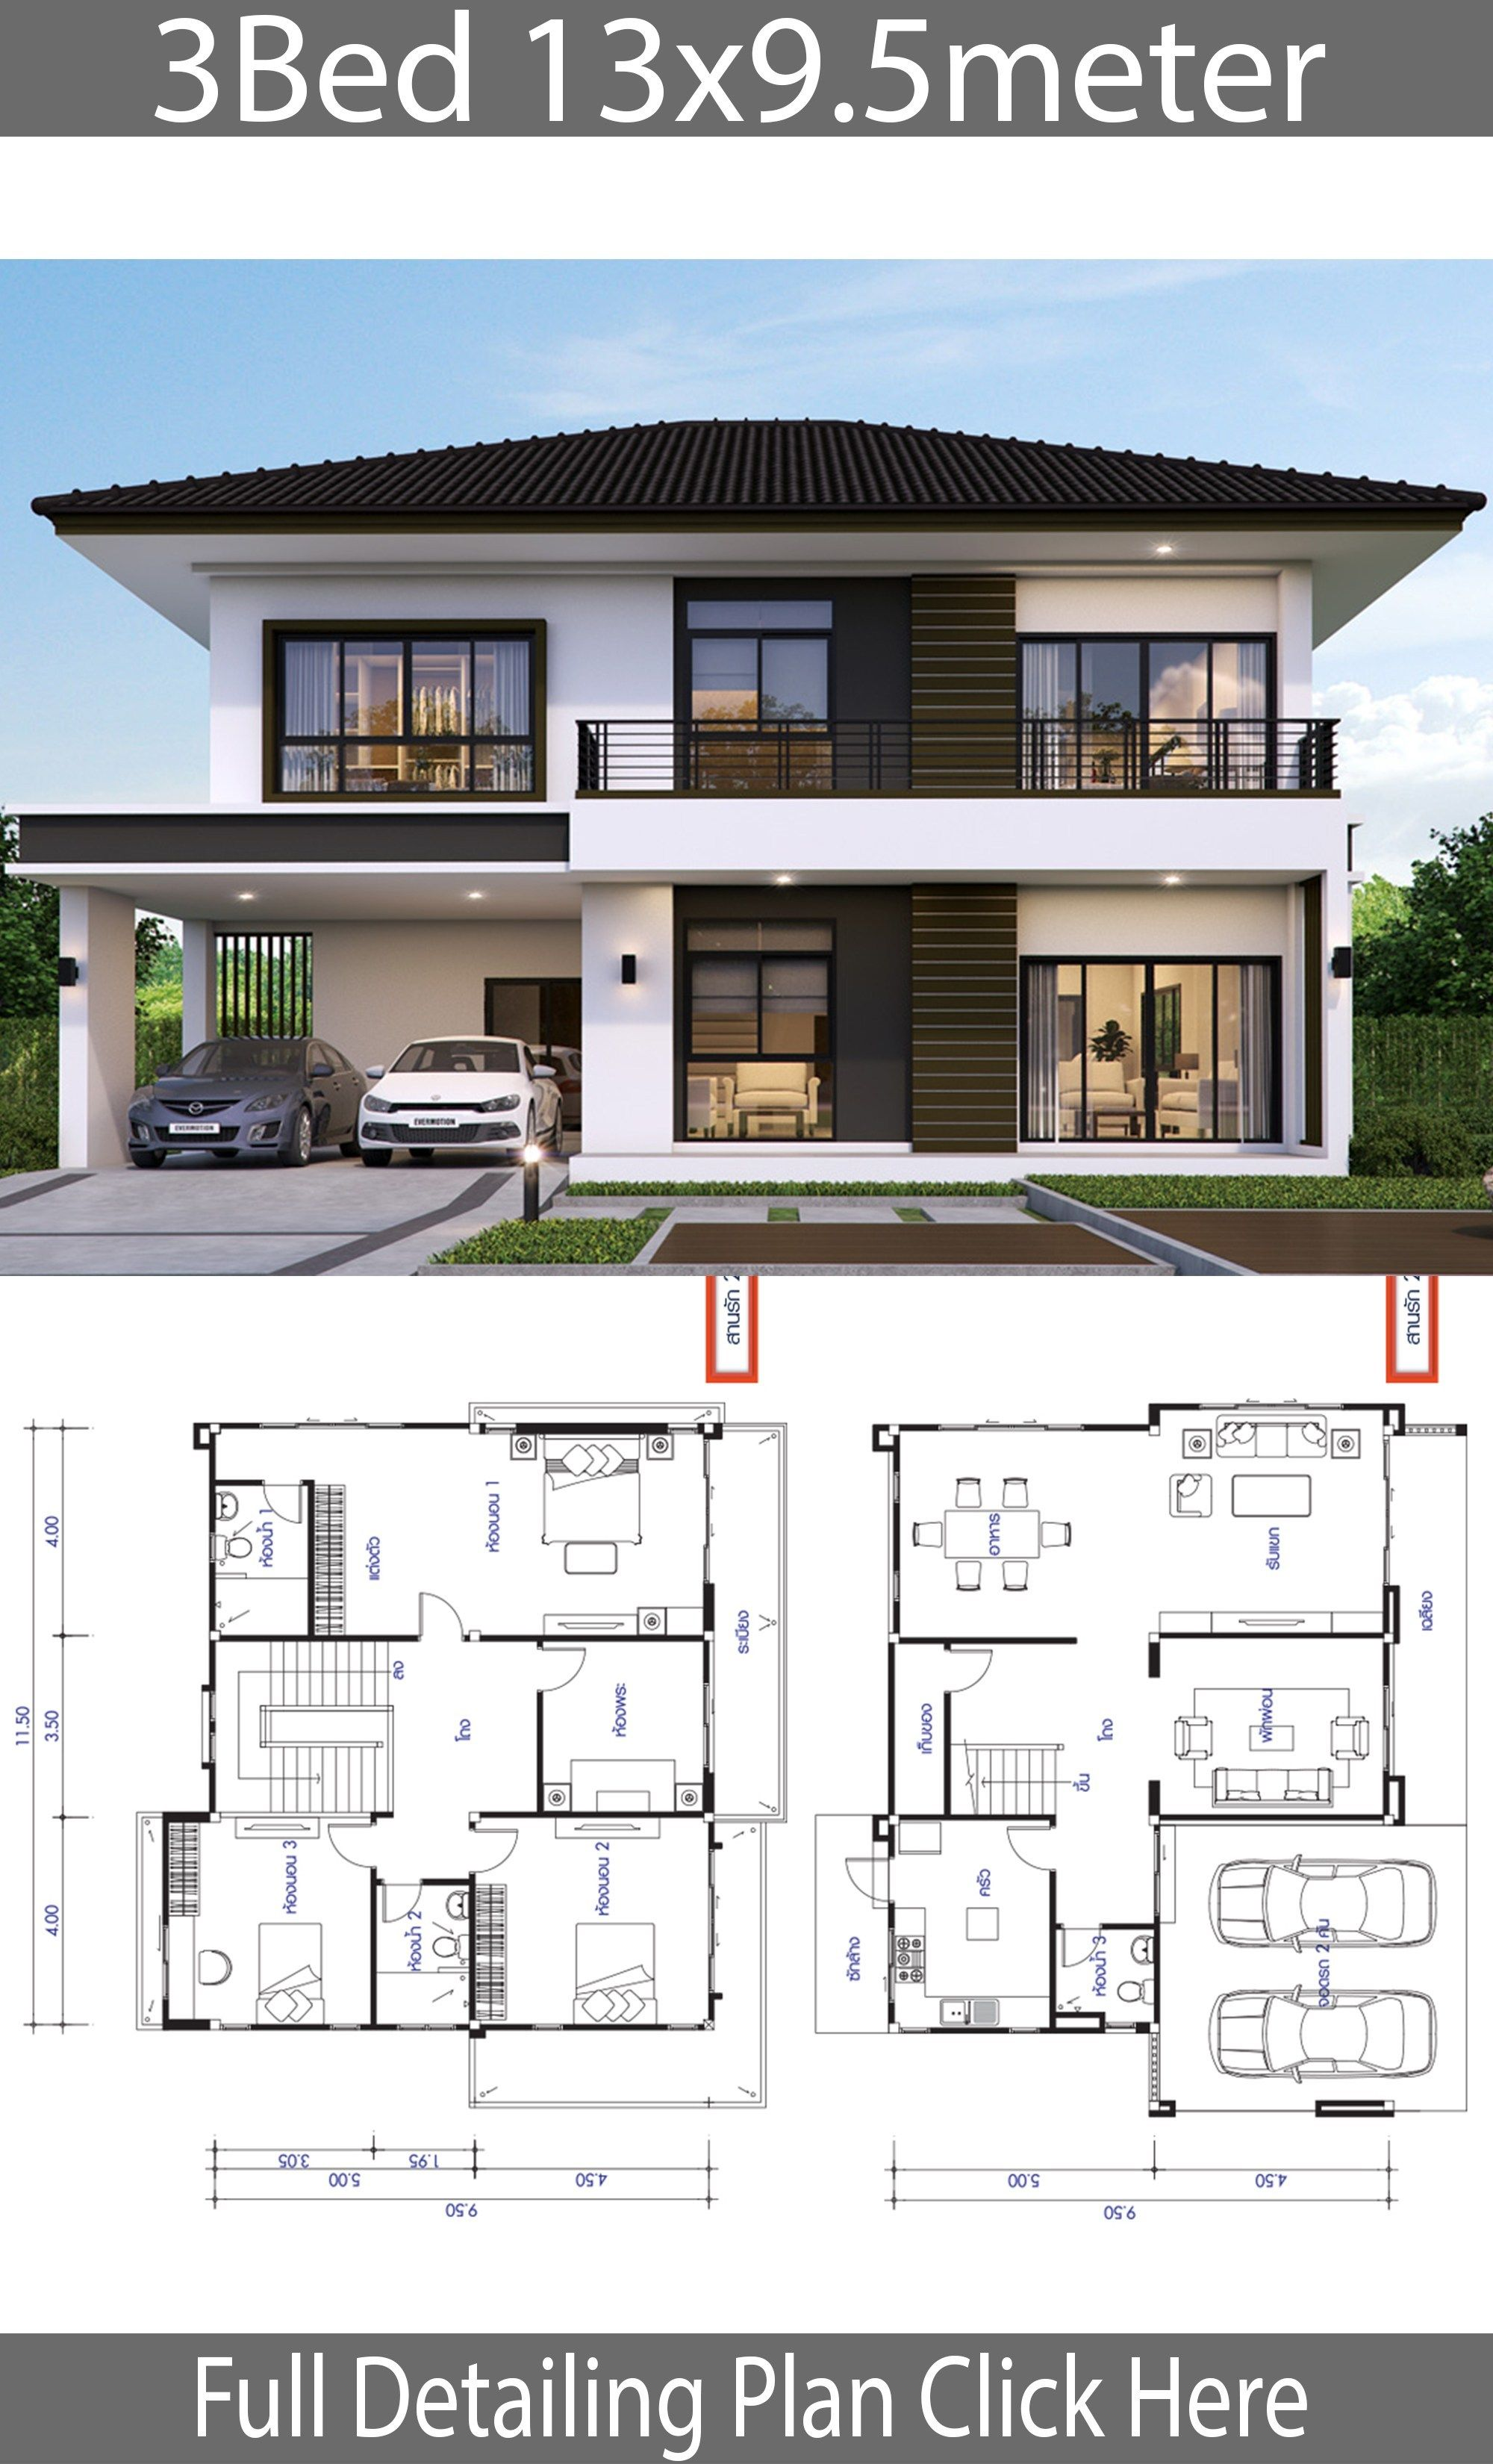 House Design Plan 13x9 5m With 3 Bedrooms Home Design With Plan Architectural House Plans House Architecture Design Modern House Design